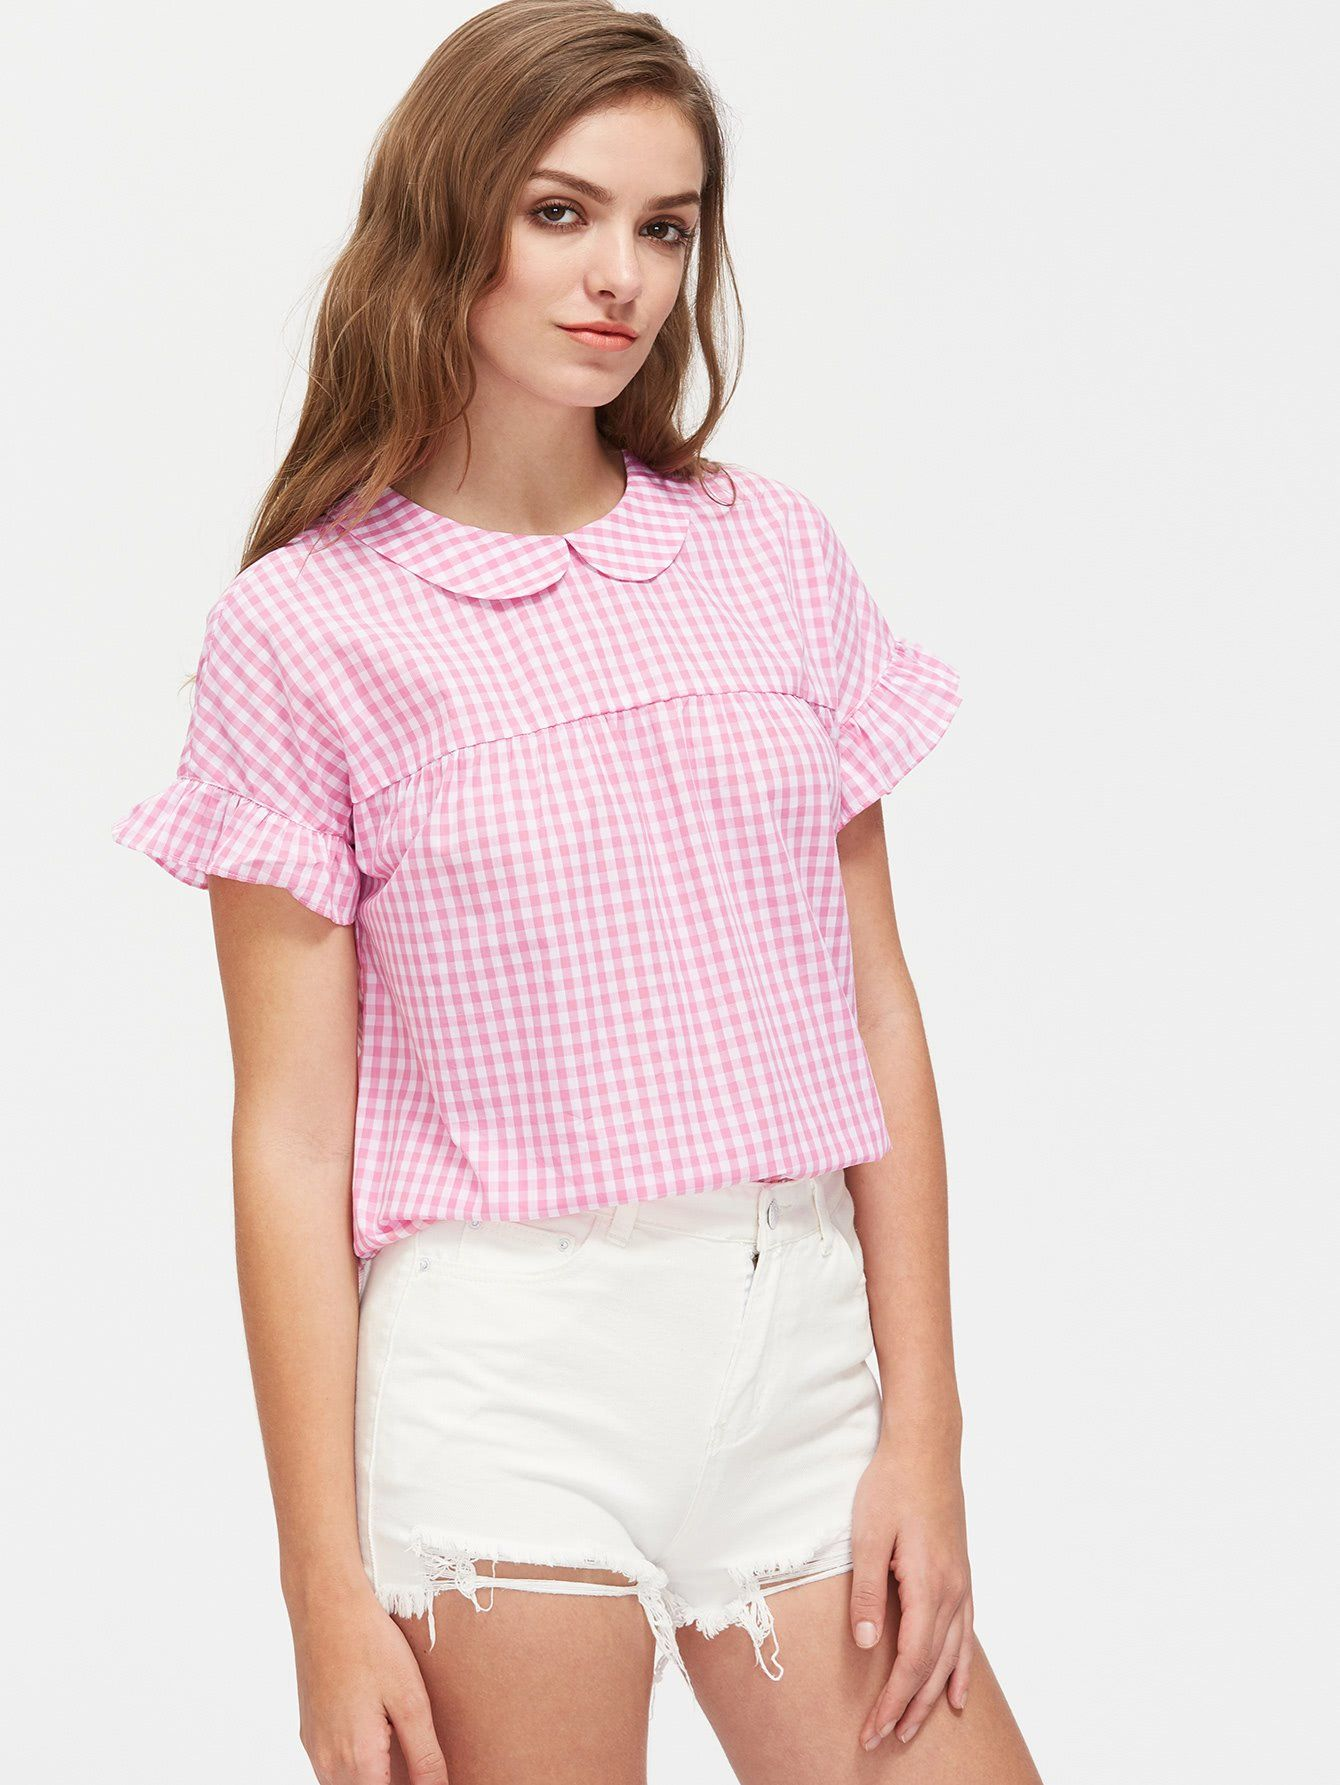 Pink Baby Collar Frill Trim Tie Back Checkered Top   Ropa